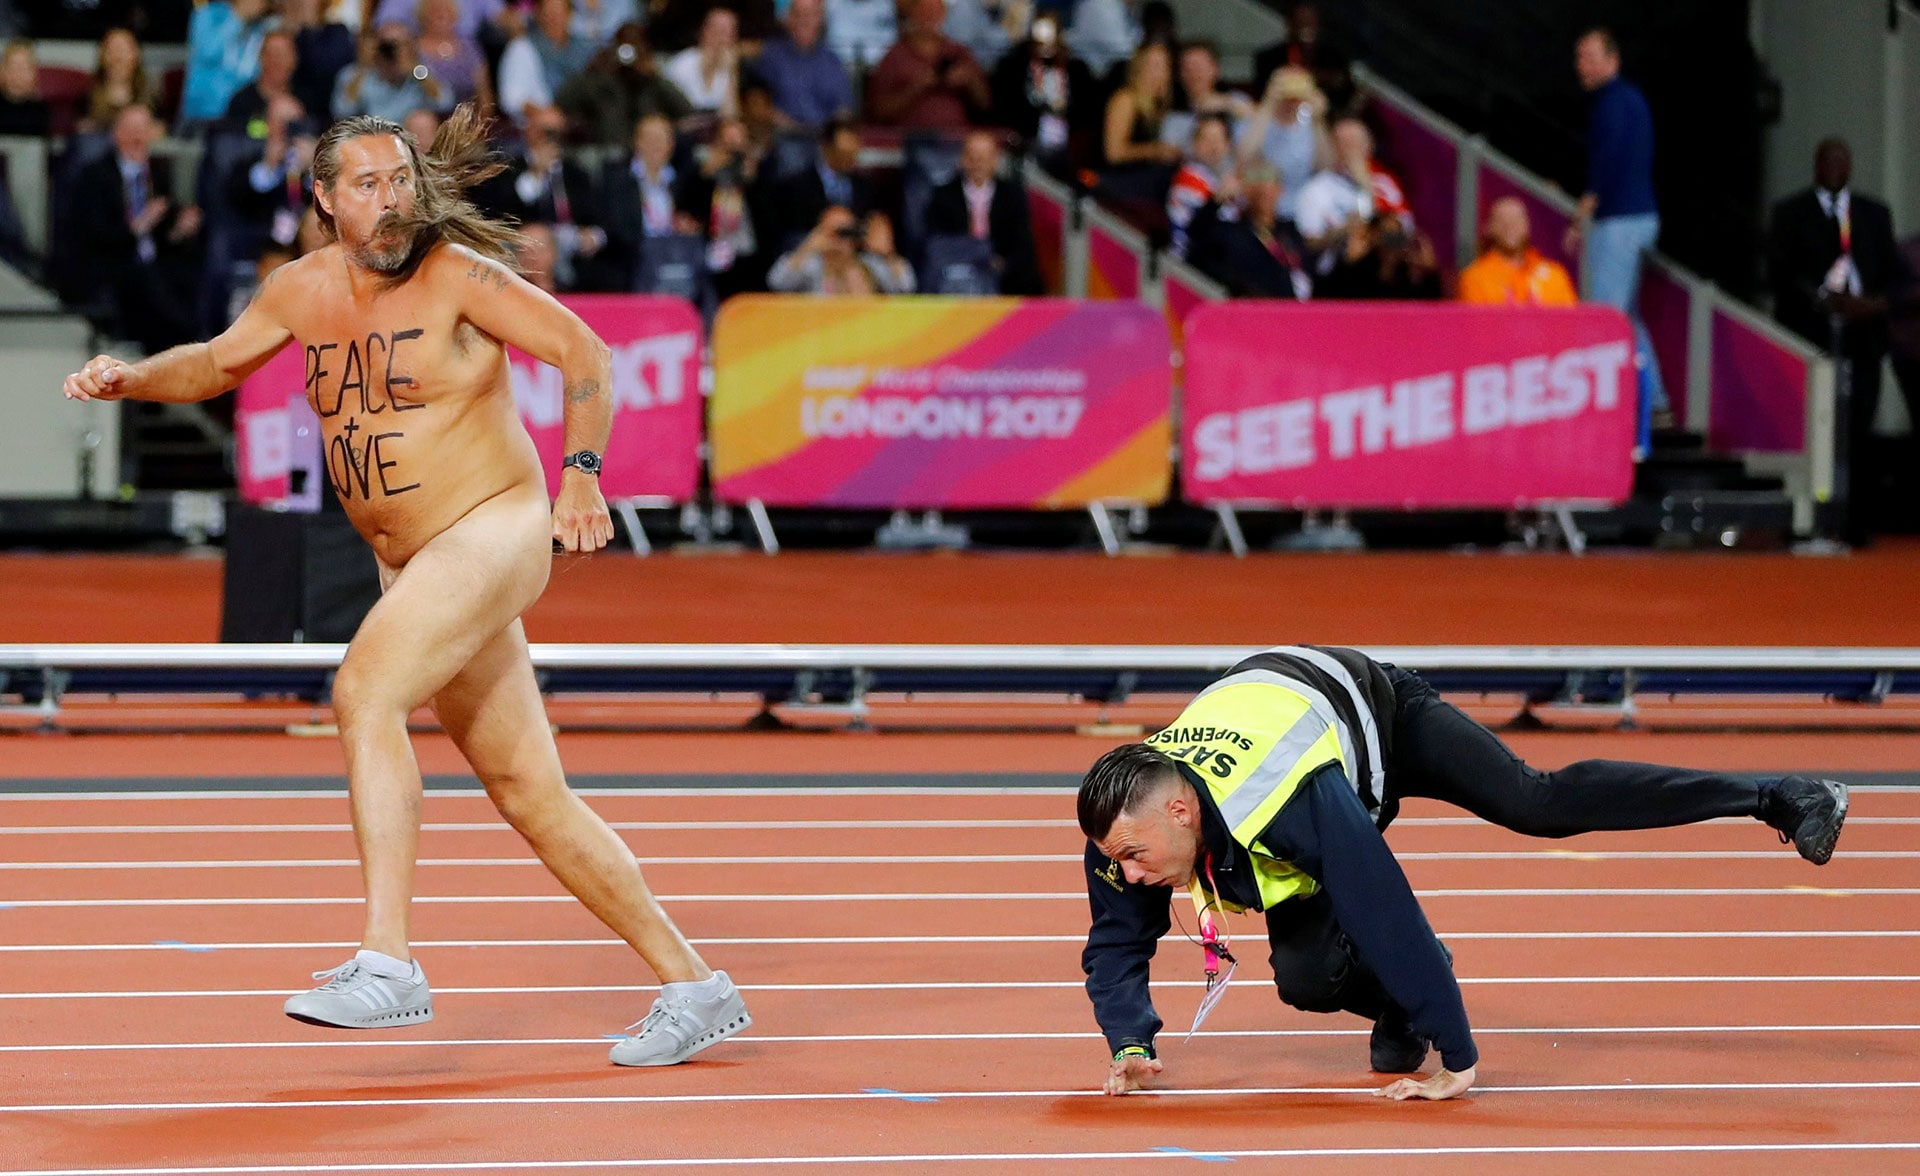 A streaker ran onto the track at the World Athletics Championships in London